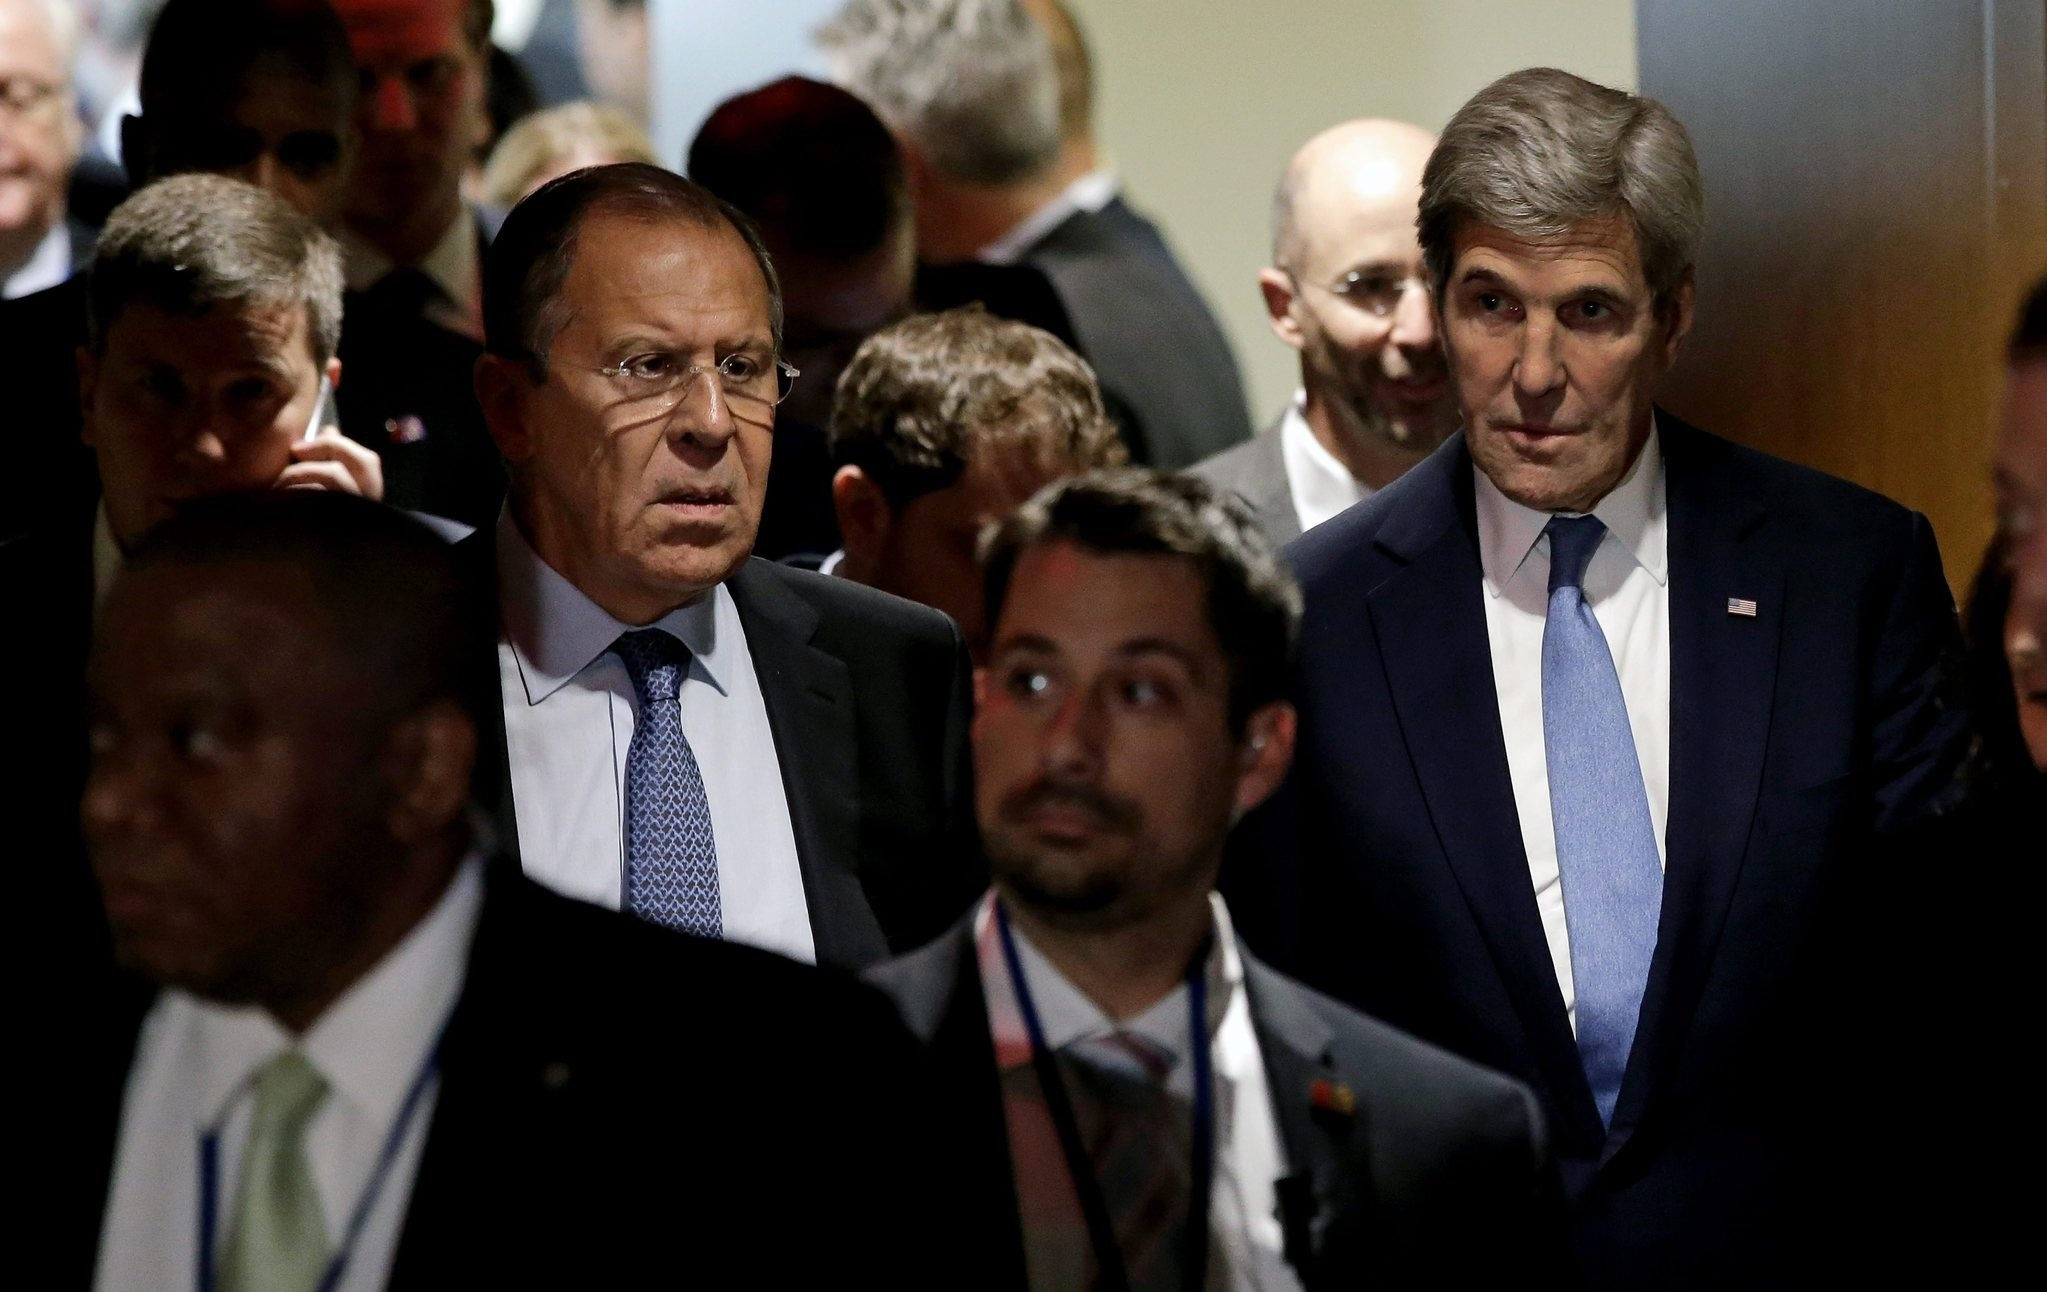 file picture dated 22 September 2016 shows John Kerry (R), US Secretary of State and Sergei Lavrov (C), Russian Minister of Foreign Affairs exiting after a meeting of the E3 + 3 in the security council chambers. (EPA Photo)